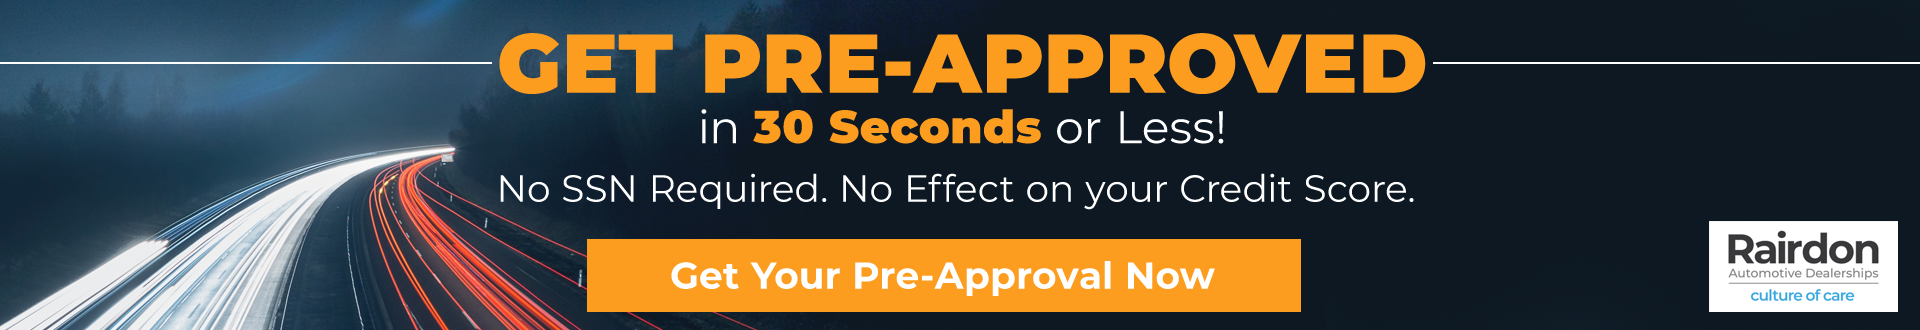 allstores-preapproved-banner-srp3